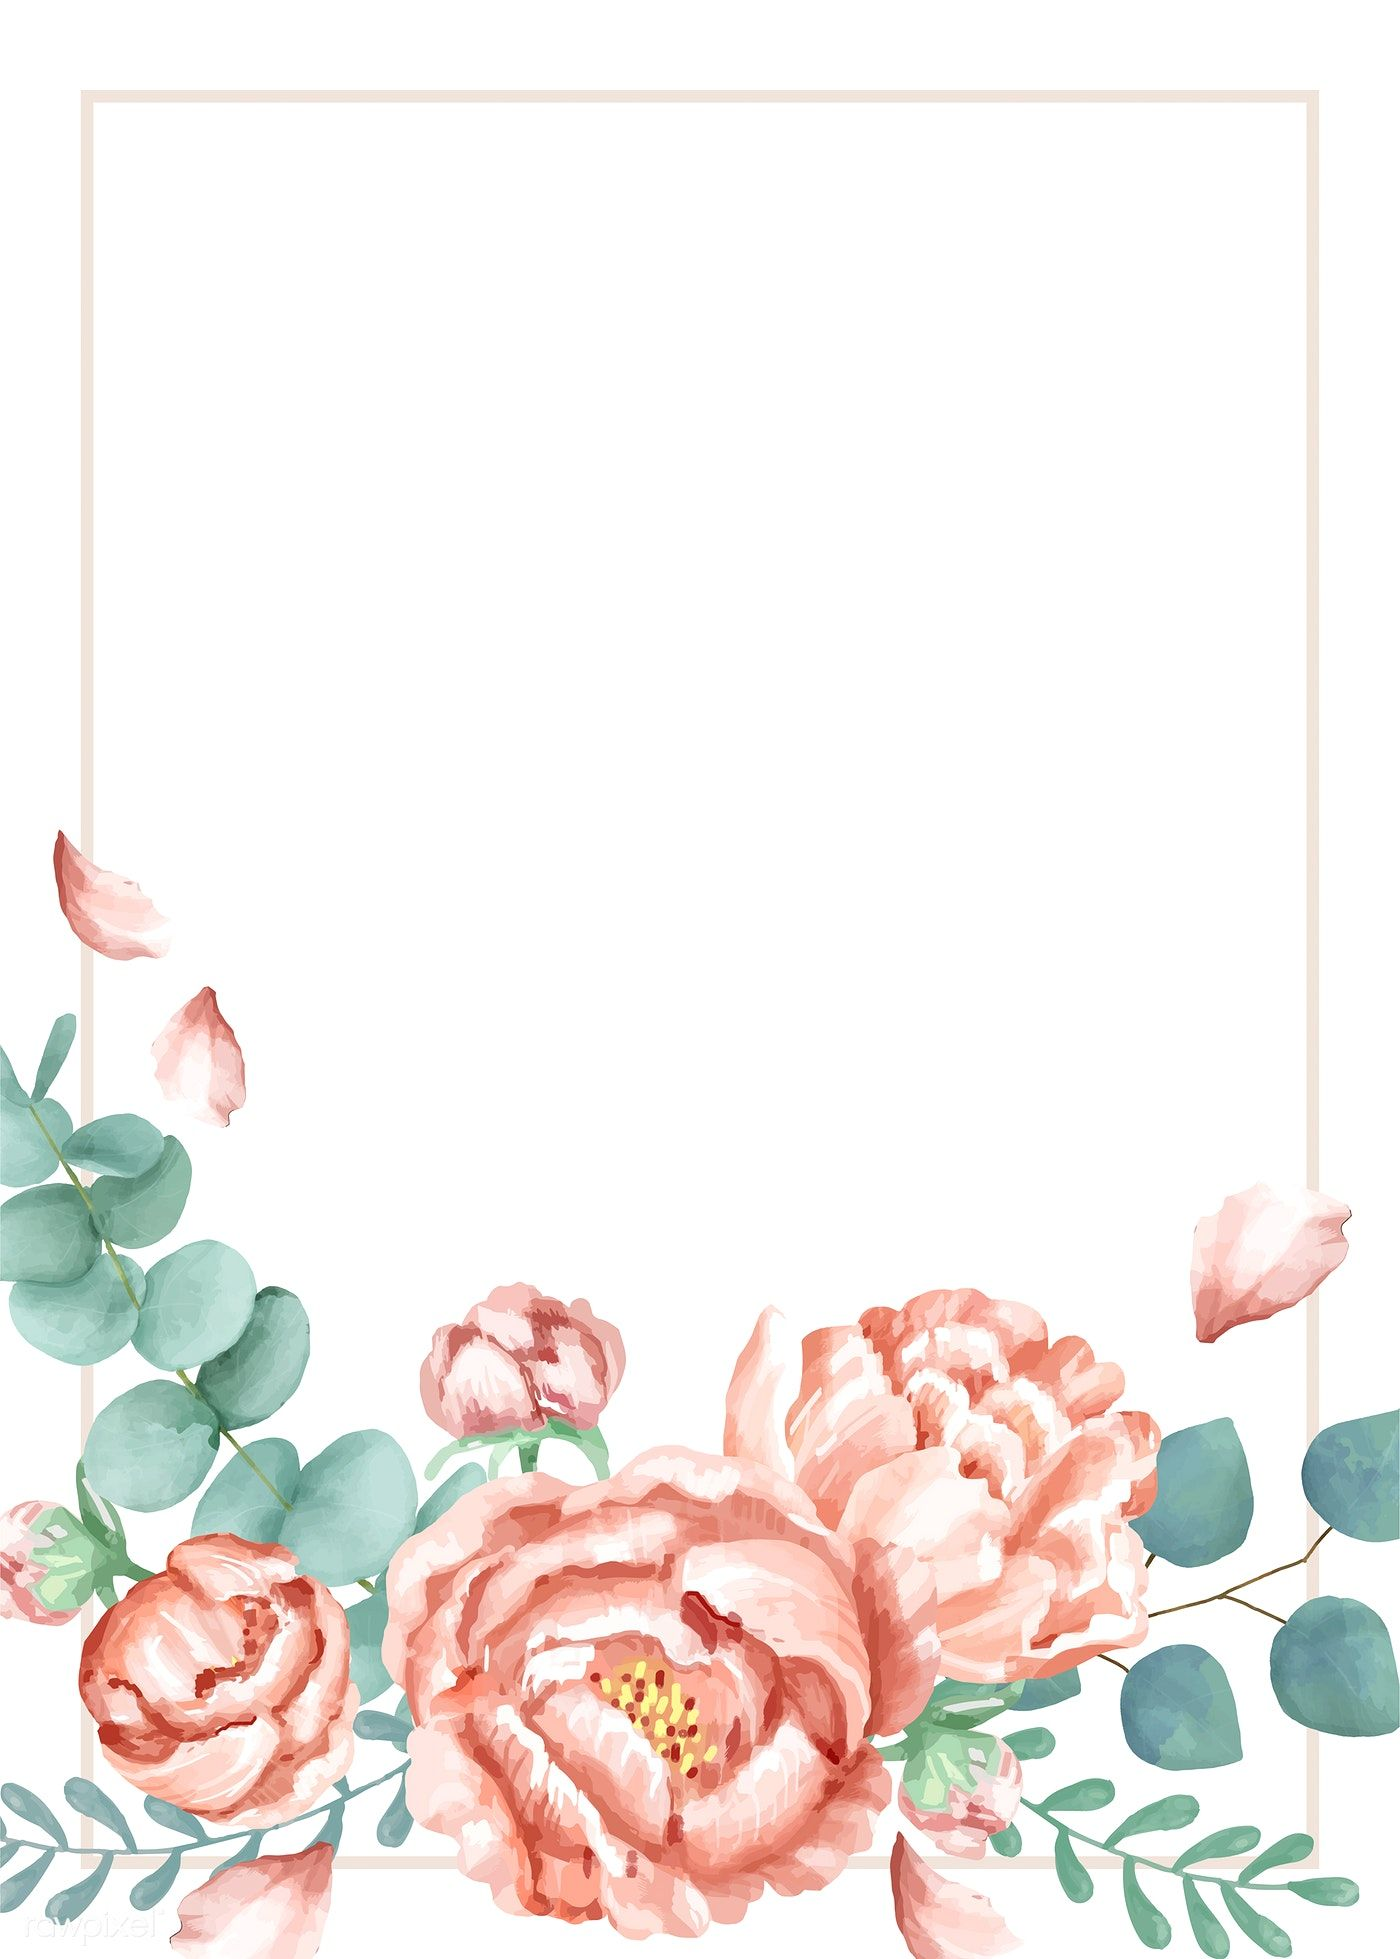 Invitation Card With A Floral Theme Free Image By Rawpixel Com